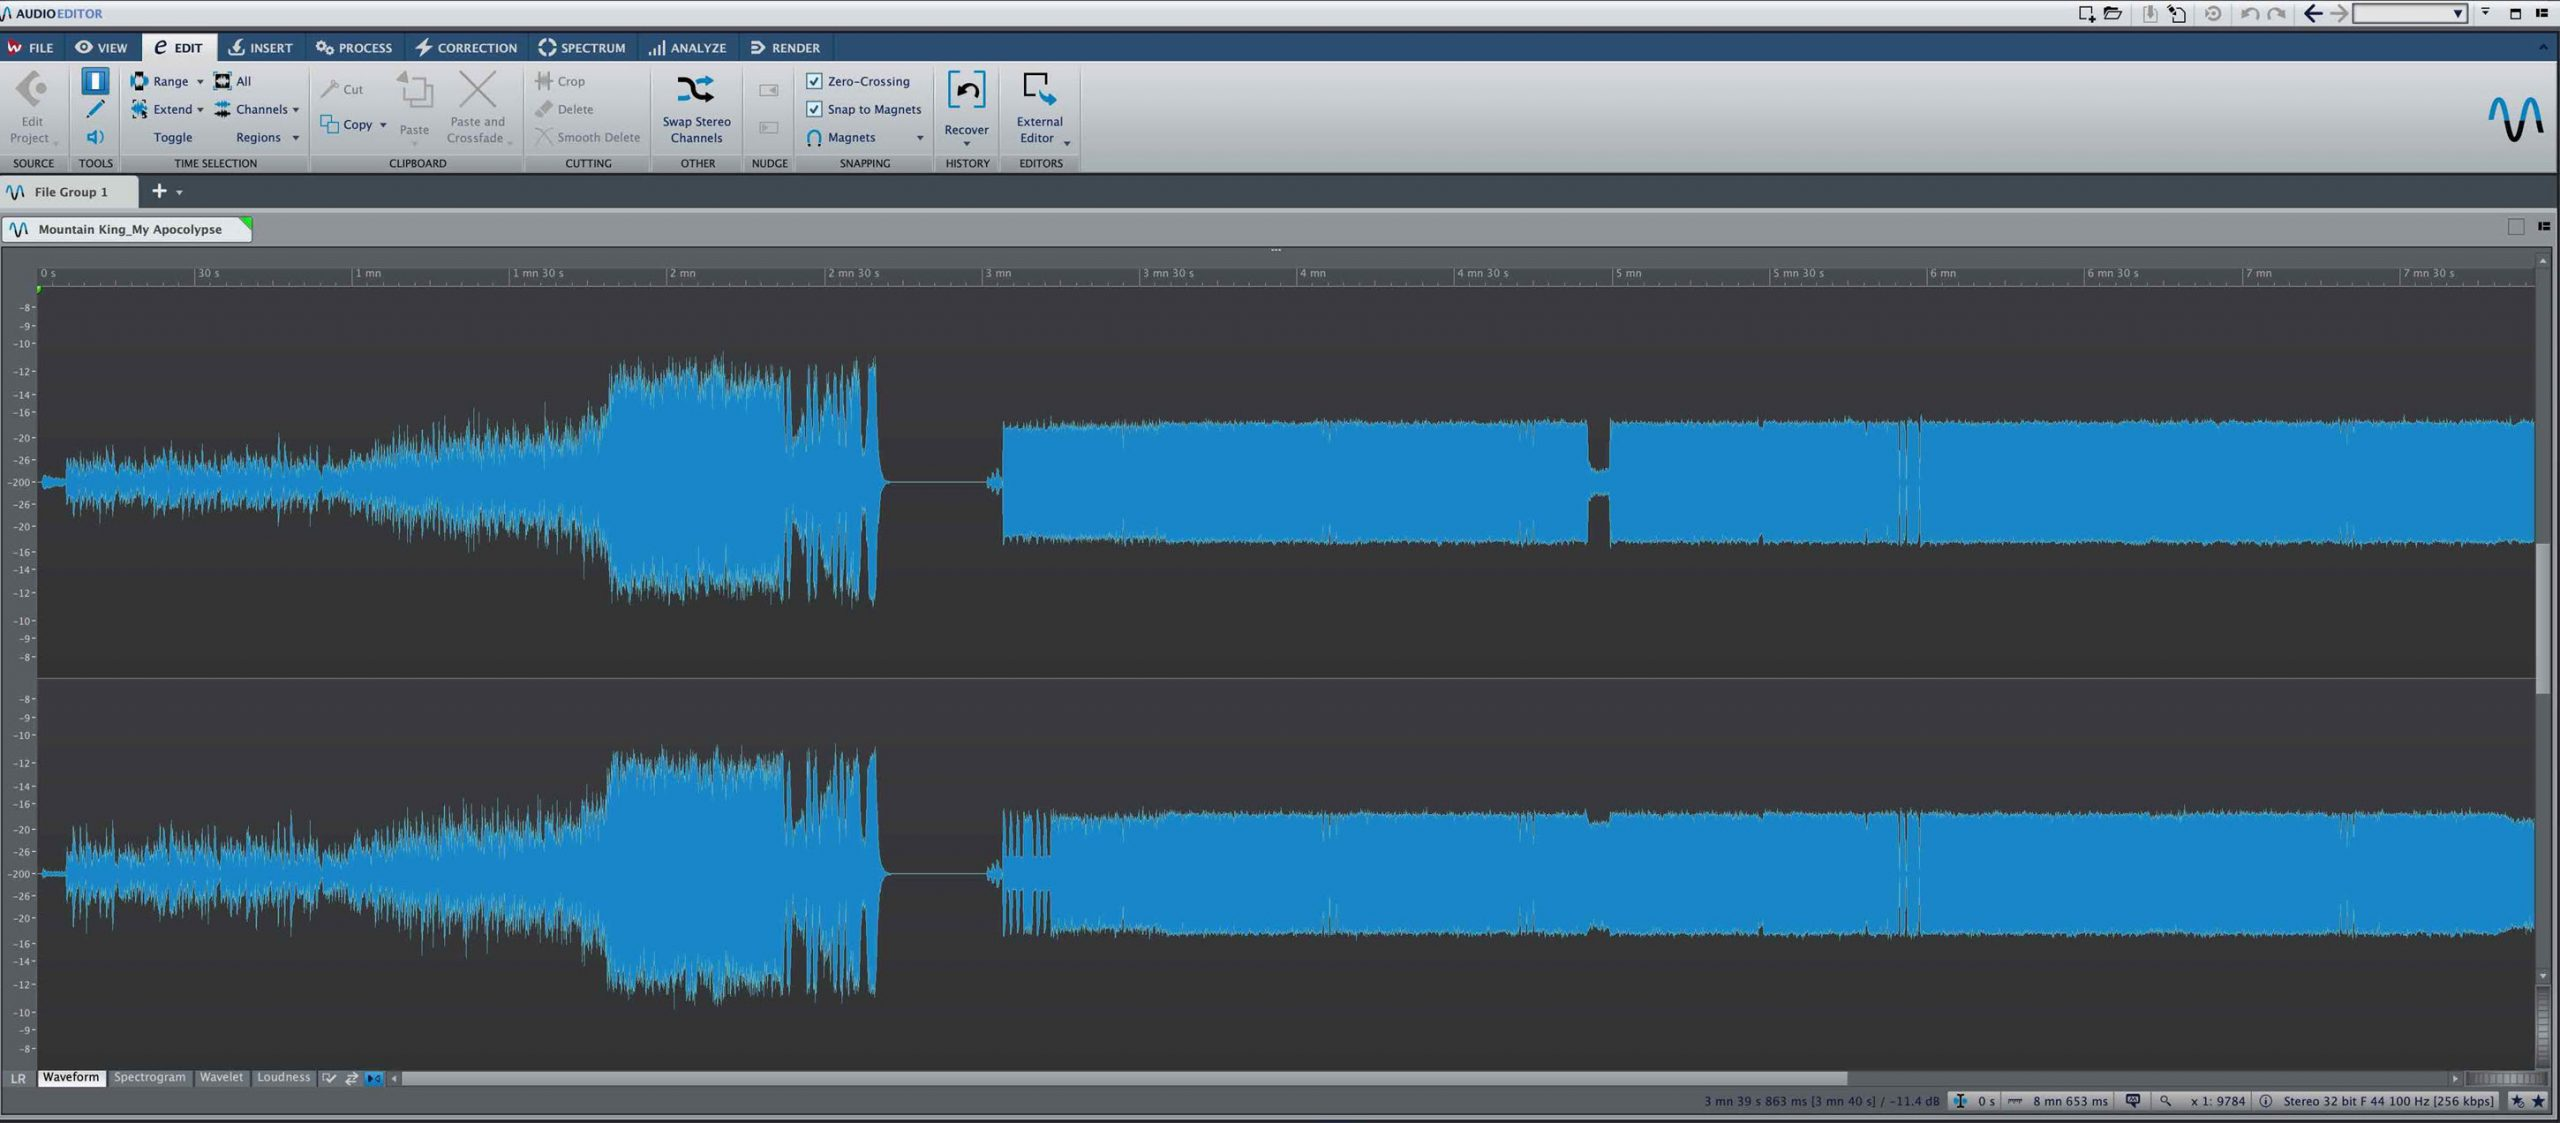 Screenshot of two soundwaves on screen.